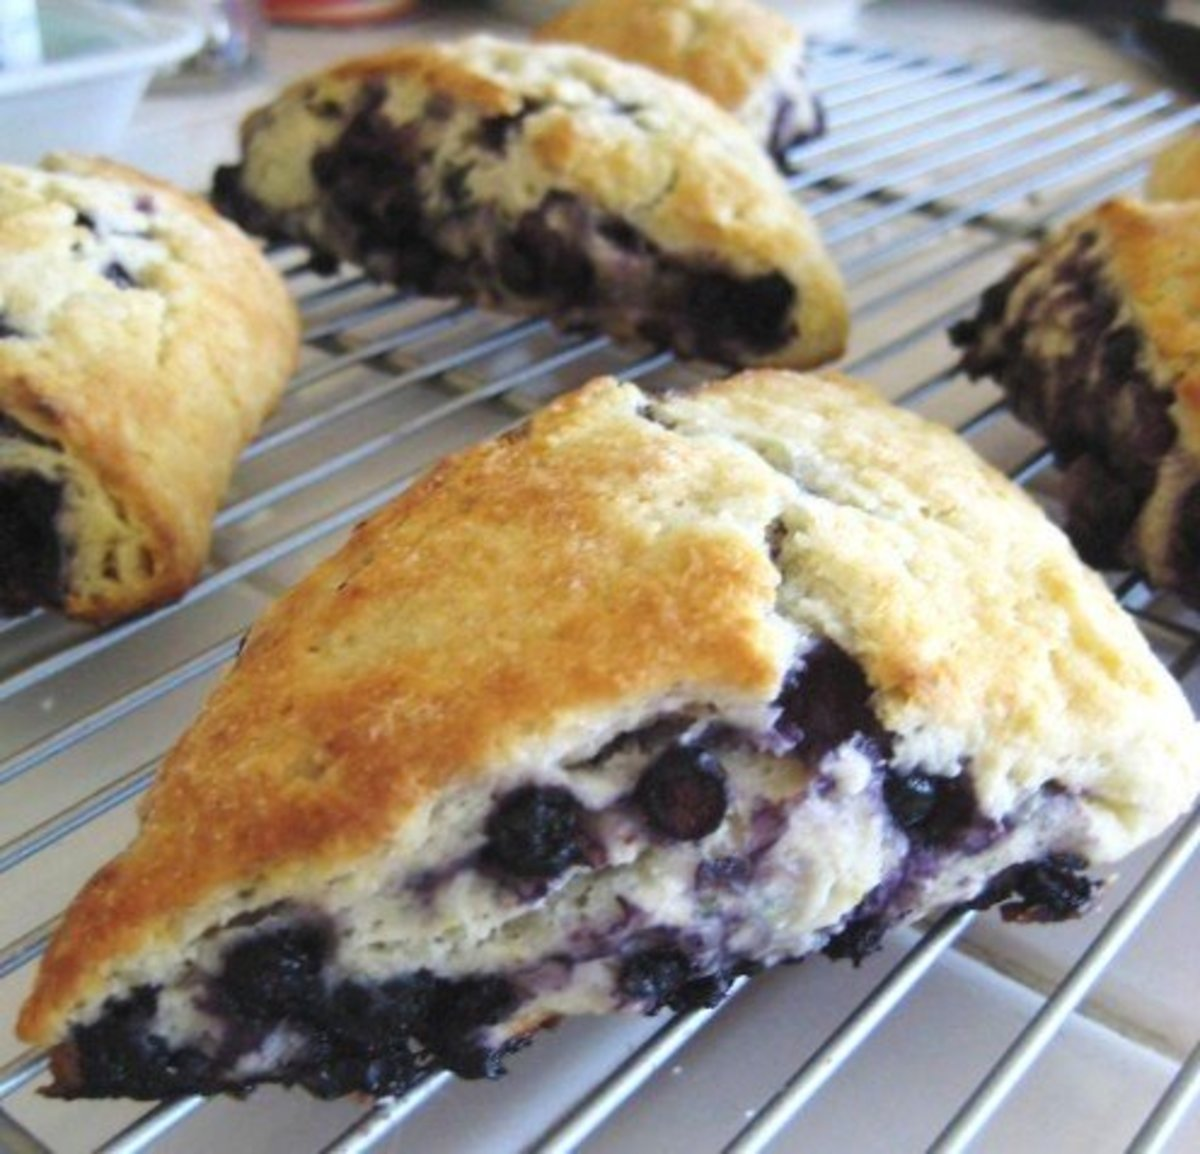 Blueberry scones are the perfect breakfast treat. Stuffed full of blueberries, these biscuits offer color and flavor.